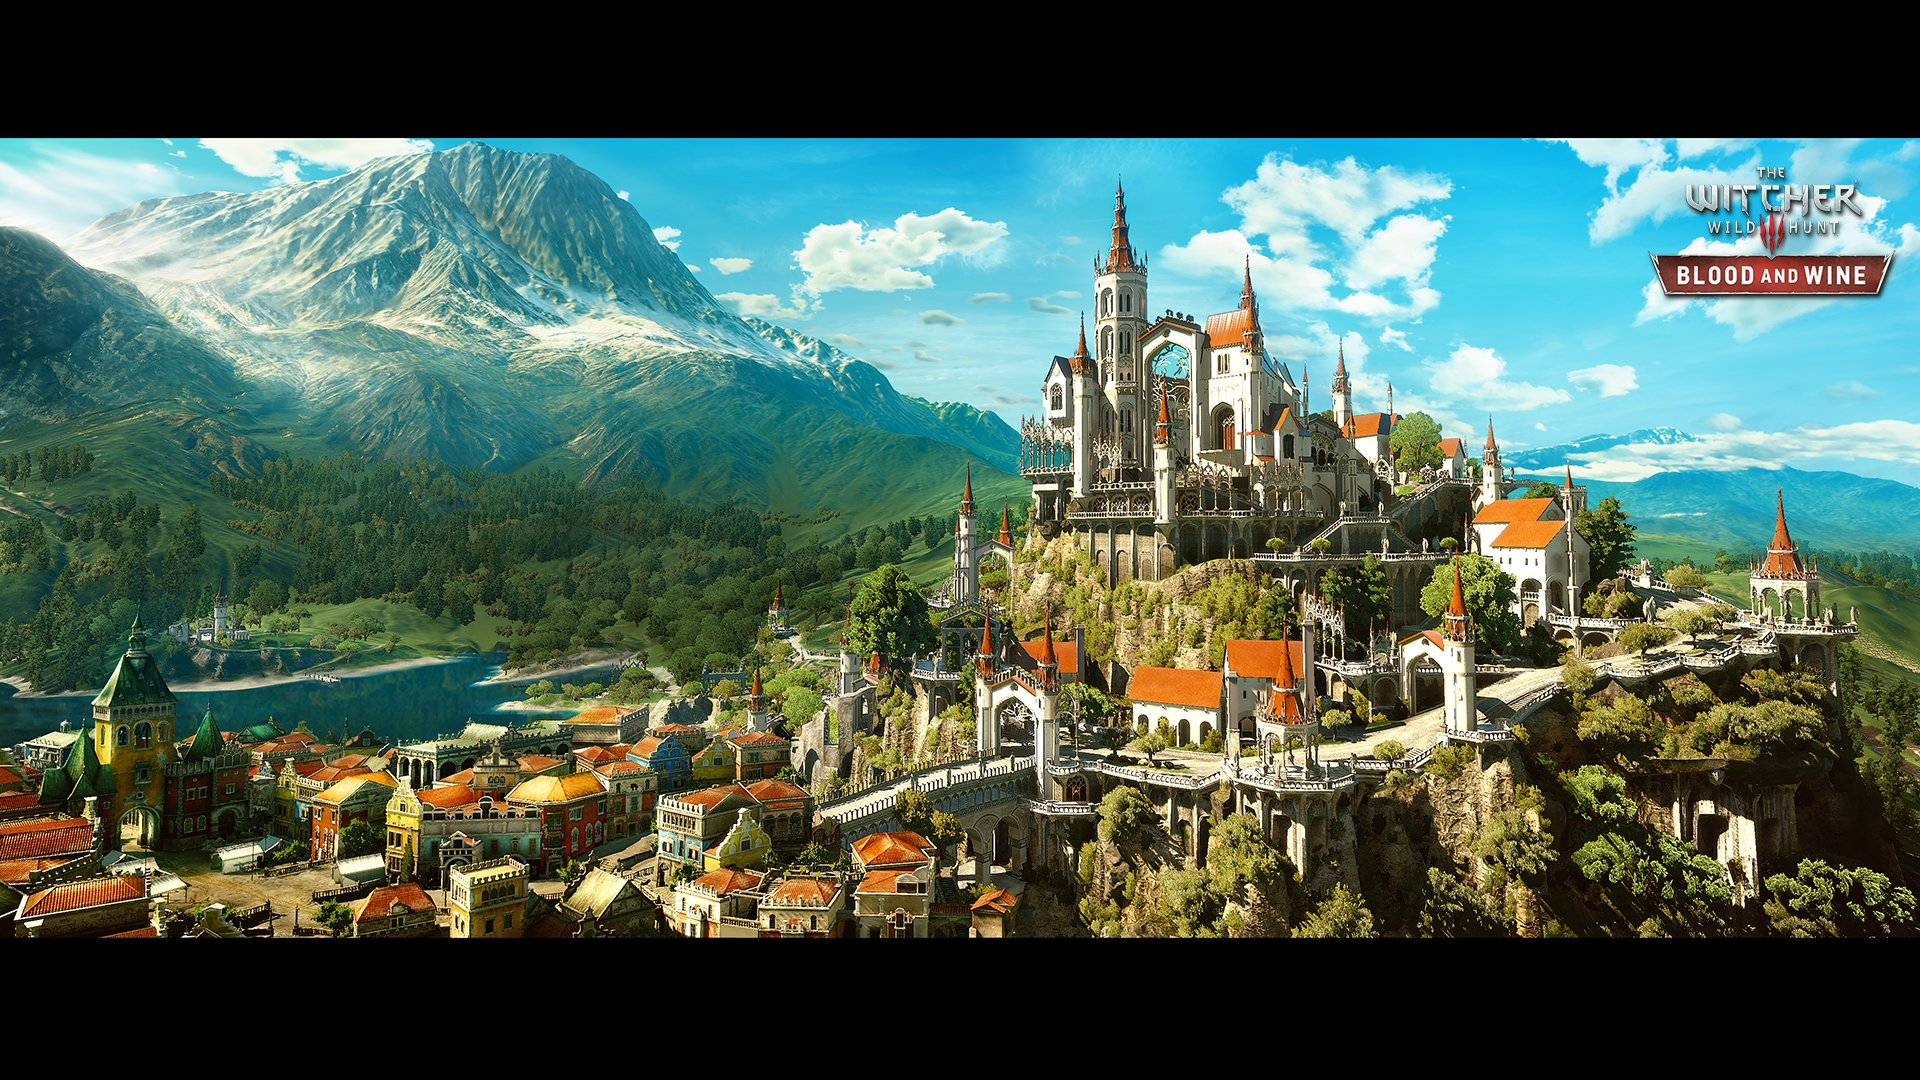 Screenshot aus The Witcher 3: Blood and Wine